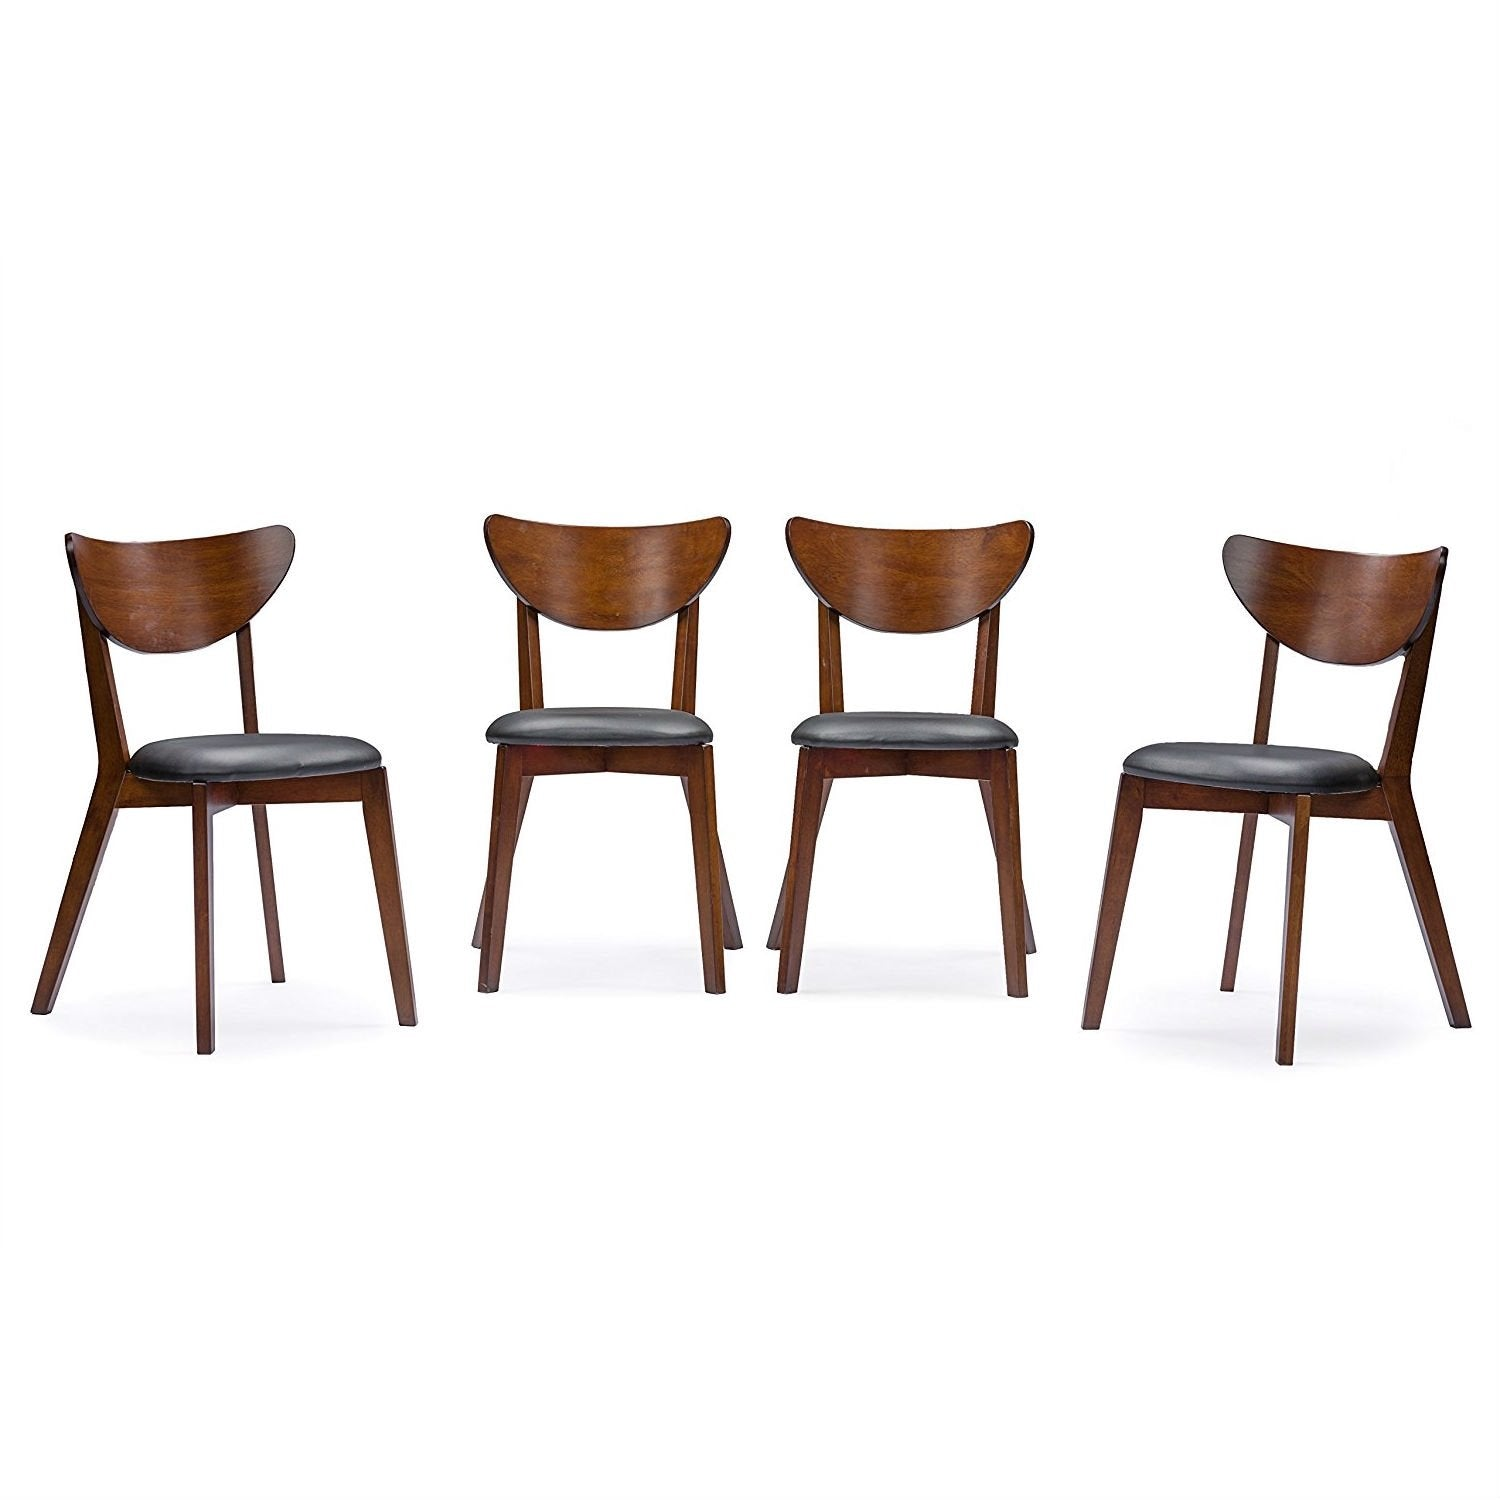 Modern Mid-Century Style 5-Piece Dining Set in Dark Brown Walnut Finish